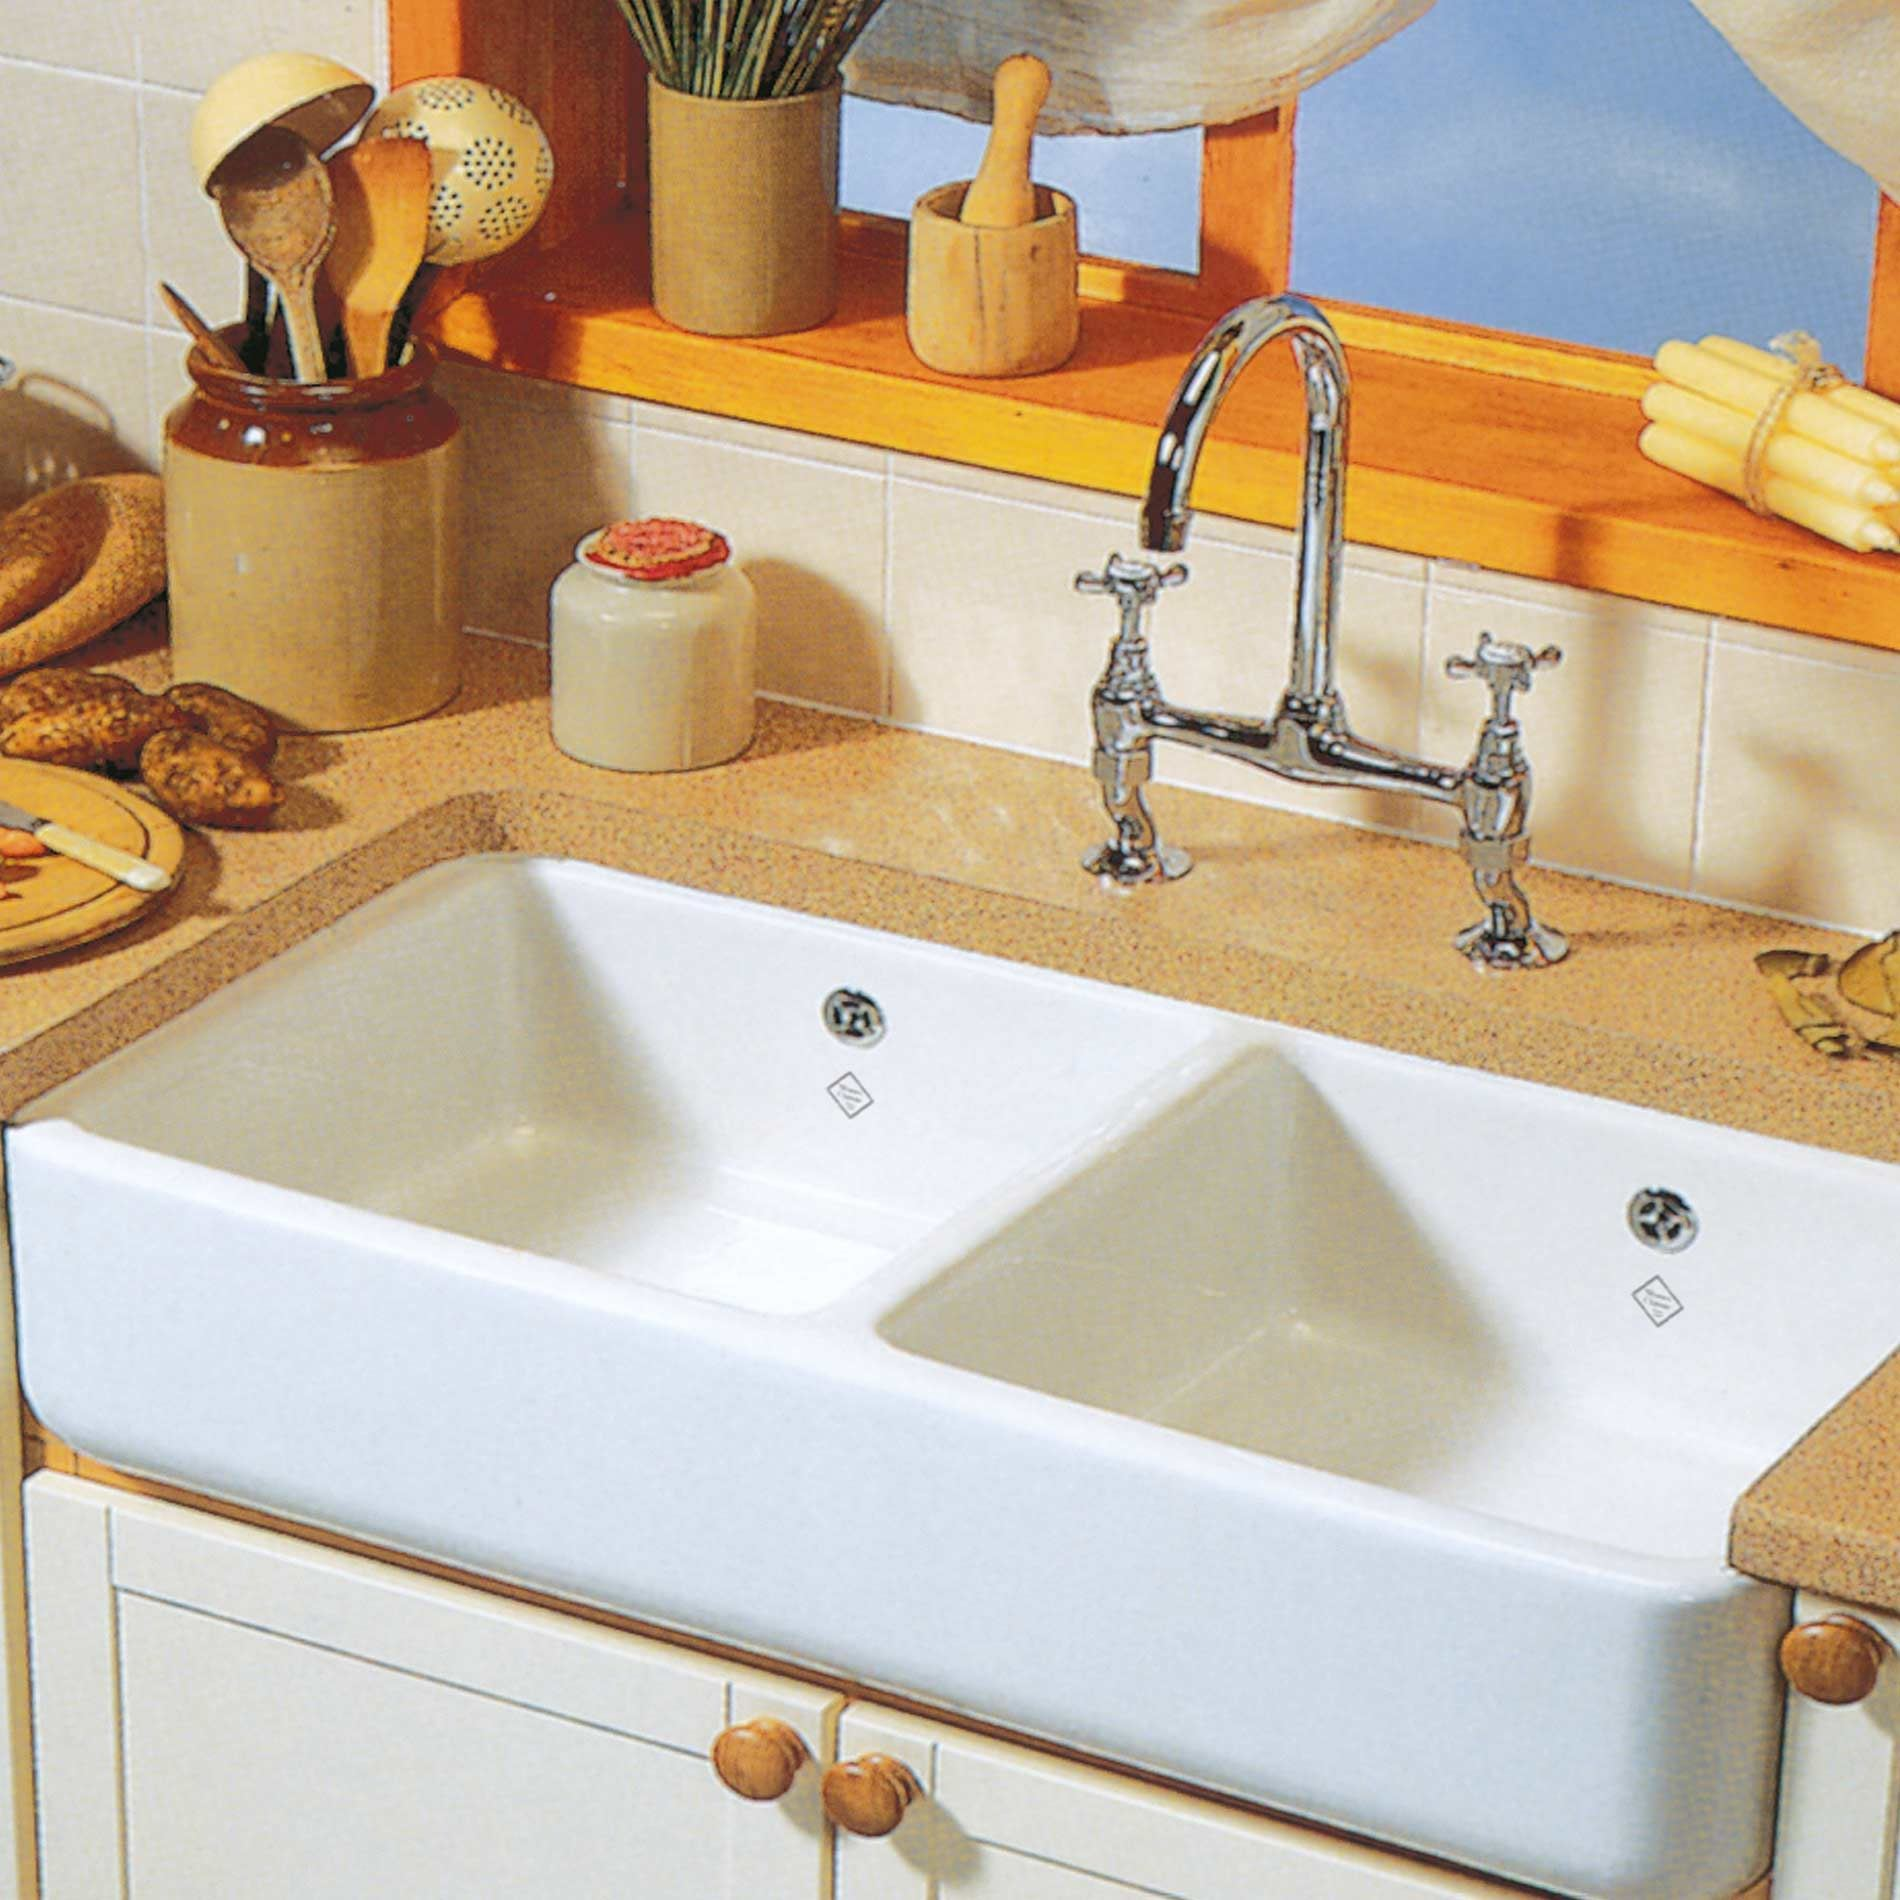 kitchen sinks   taps shaws classic 1000 double ceramic sink Pull Out Faucet Water Filter Undercounter Drinking Water Filters